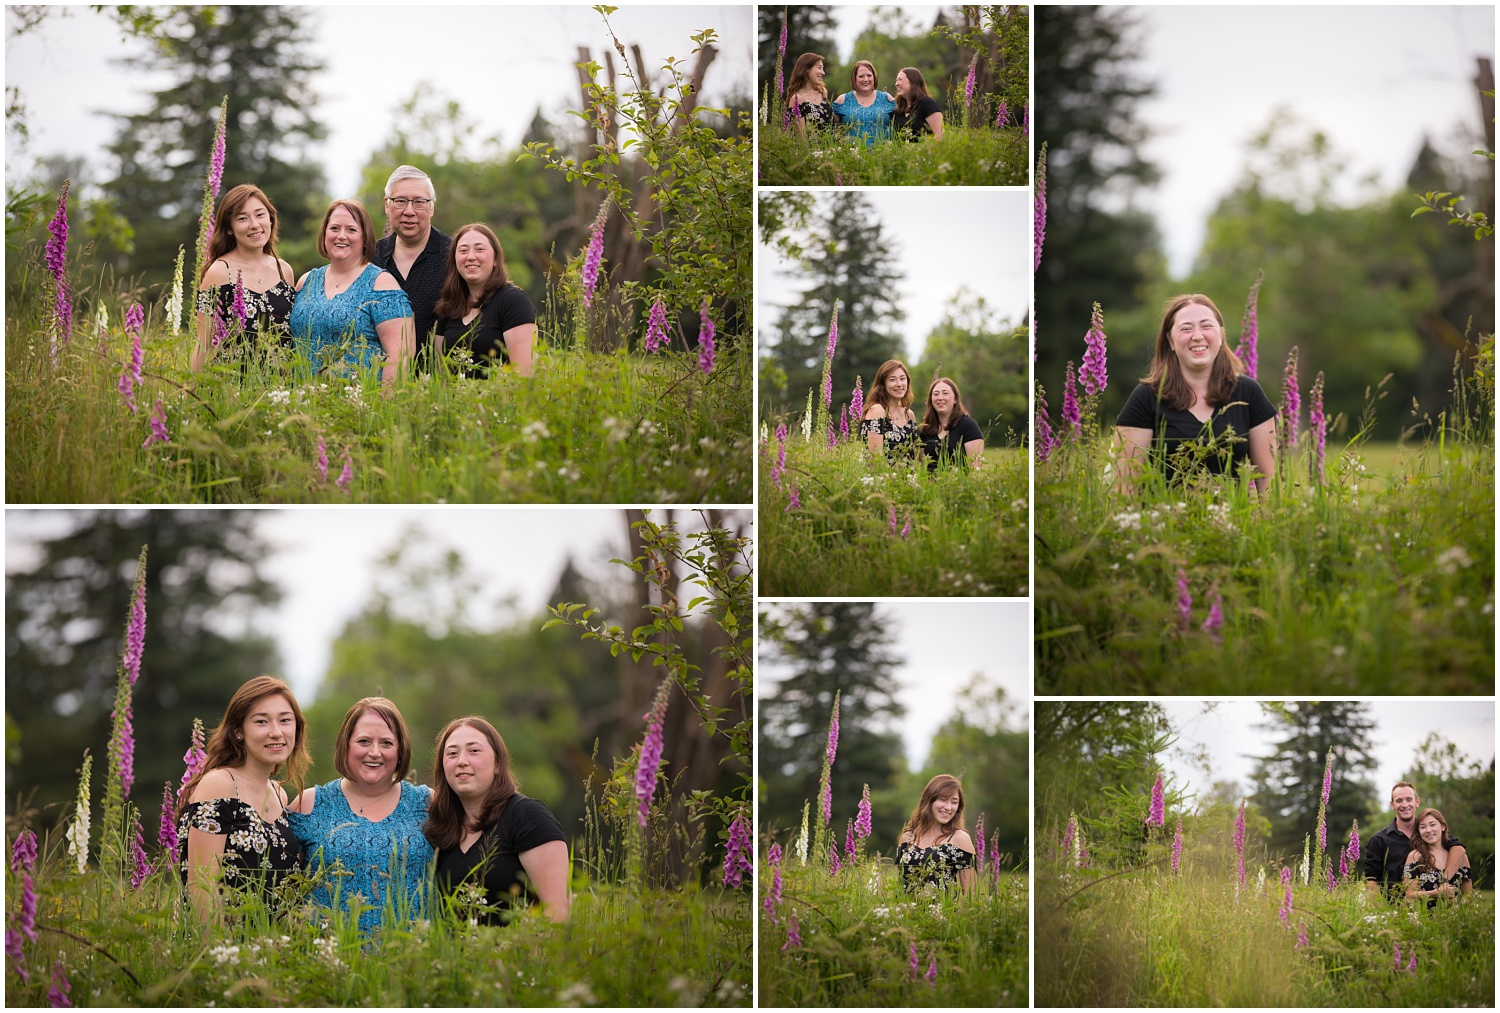 Amazing Day Photography - Campbell Valley Anniversary Session - Campbell Valely Family Session - Langely Family Photographer (2).jpg